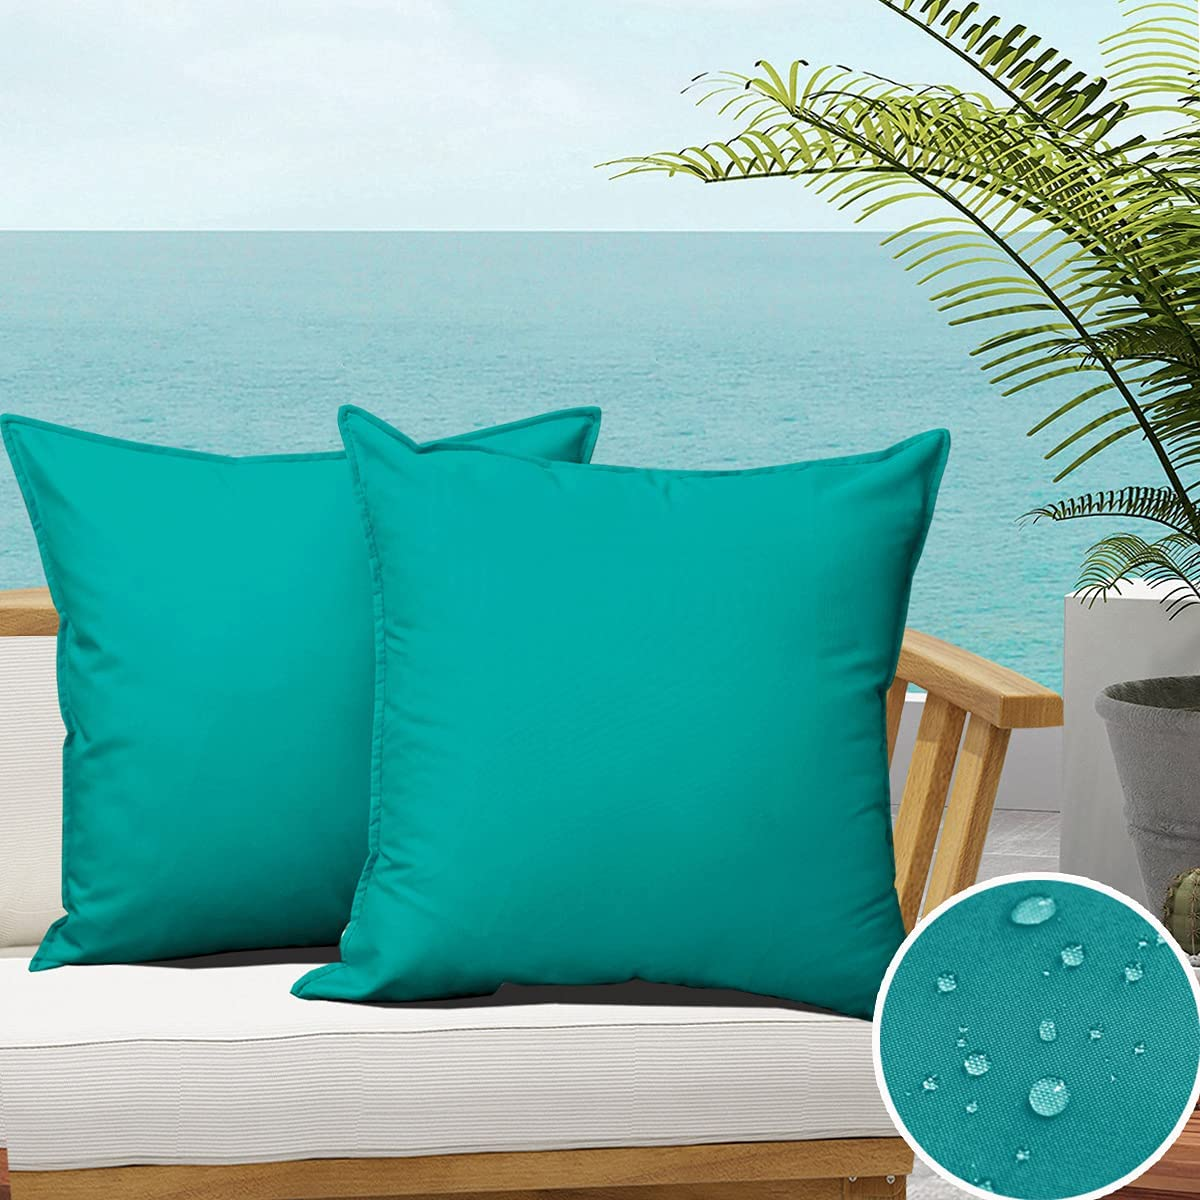 SOFJAGETQ Pack of 2 Outdoor Waterproof Throw Pillow Covers Durable Vibrant Decorative Outdoor Pillows Cushion Case Pillow Shell for Patio Couch, Tent, Sunbrella (18